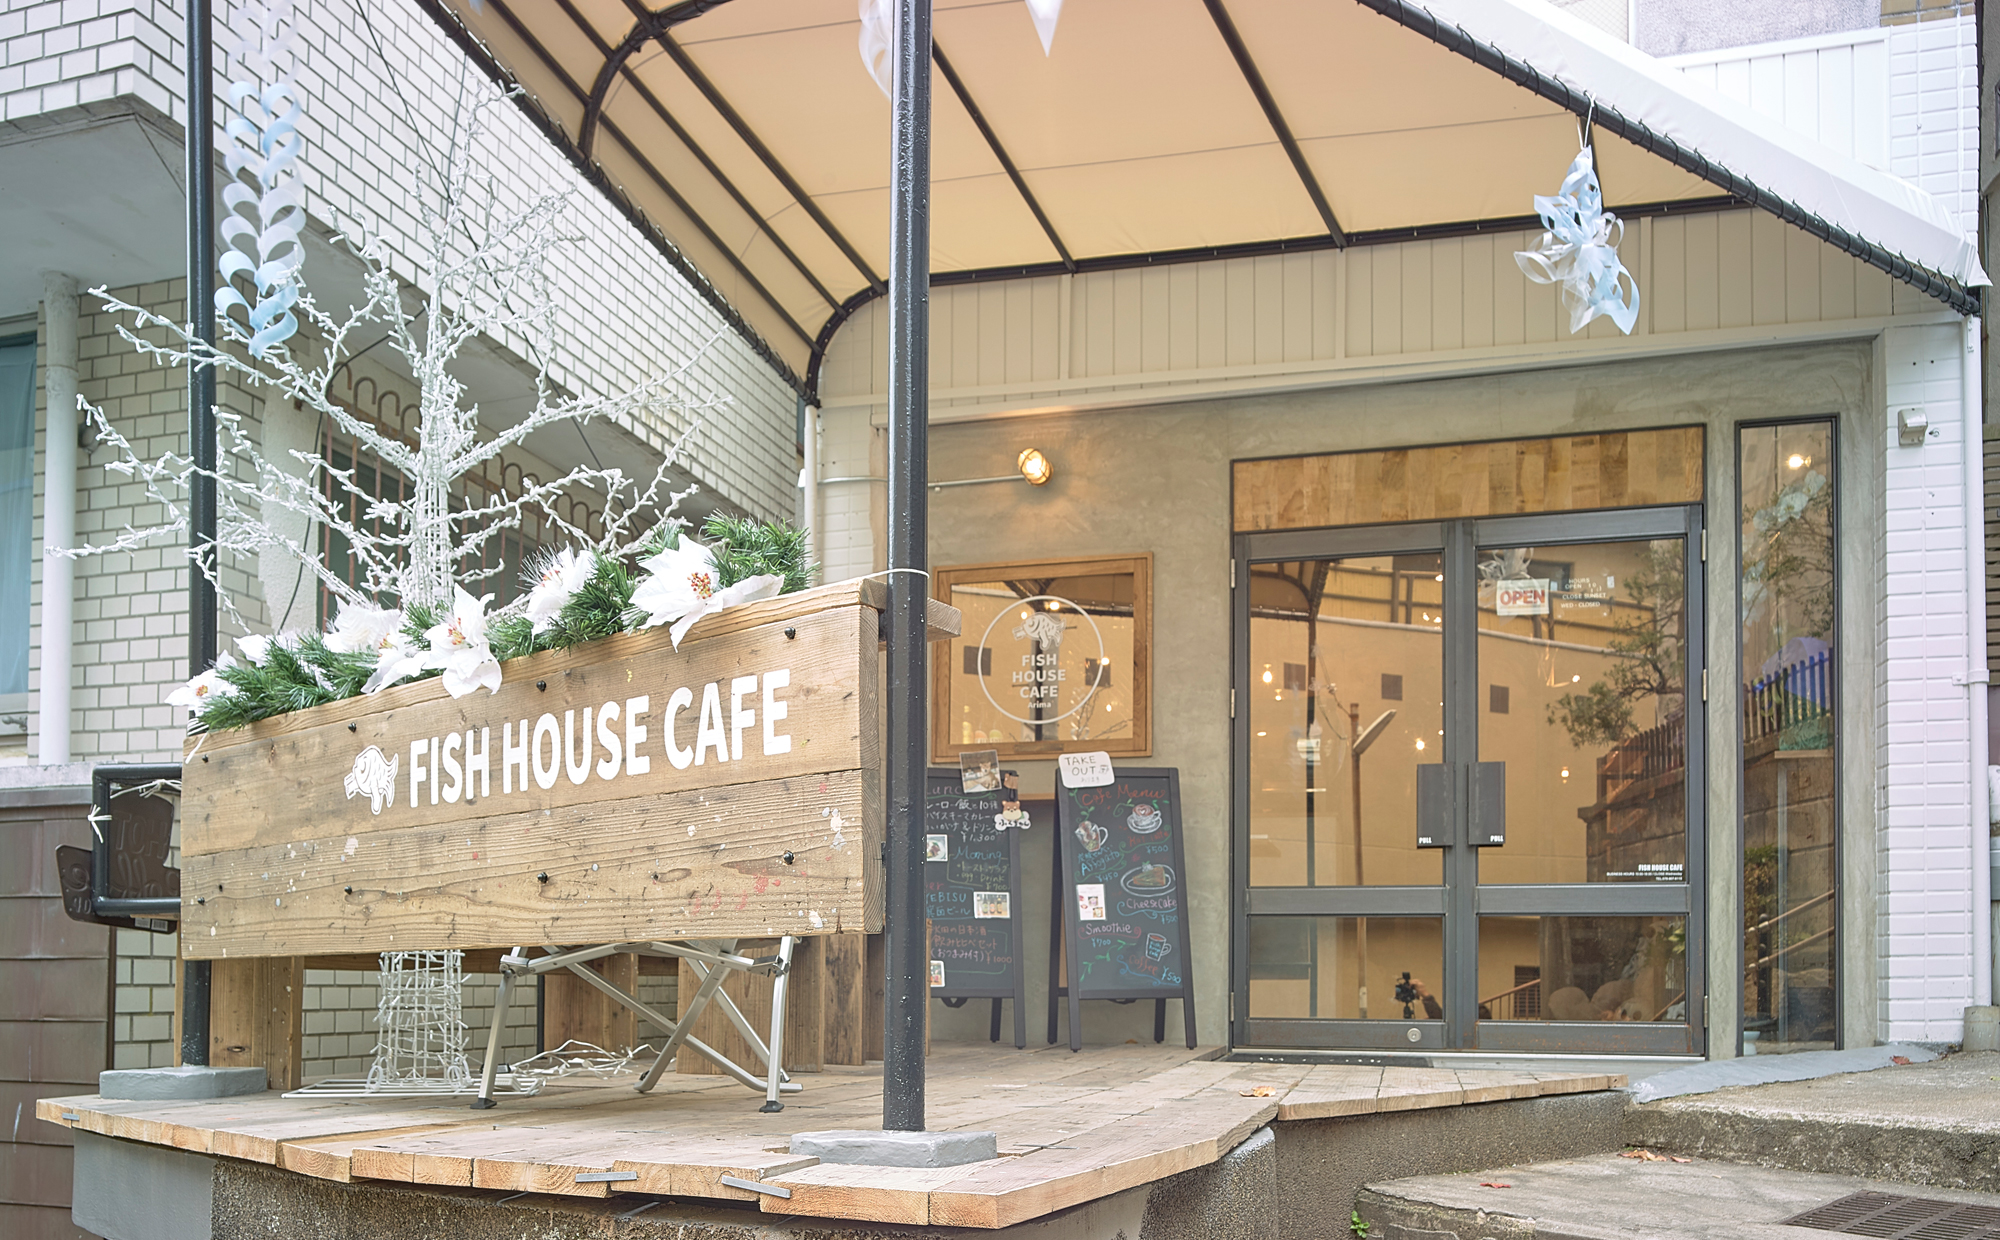 006_STORE /Fish house cafe